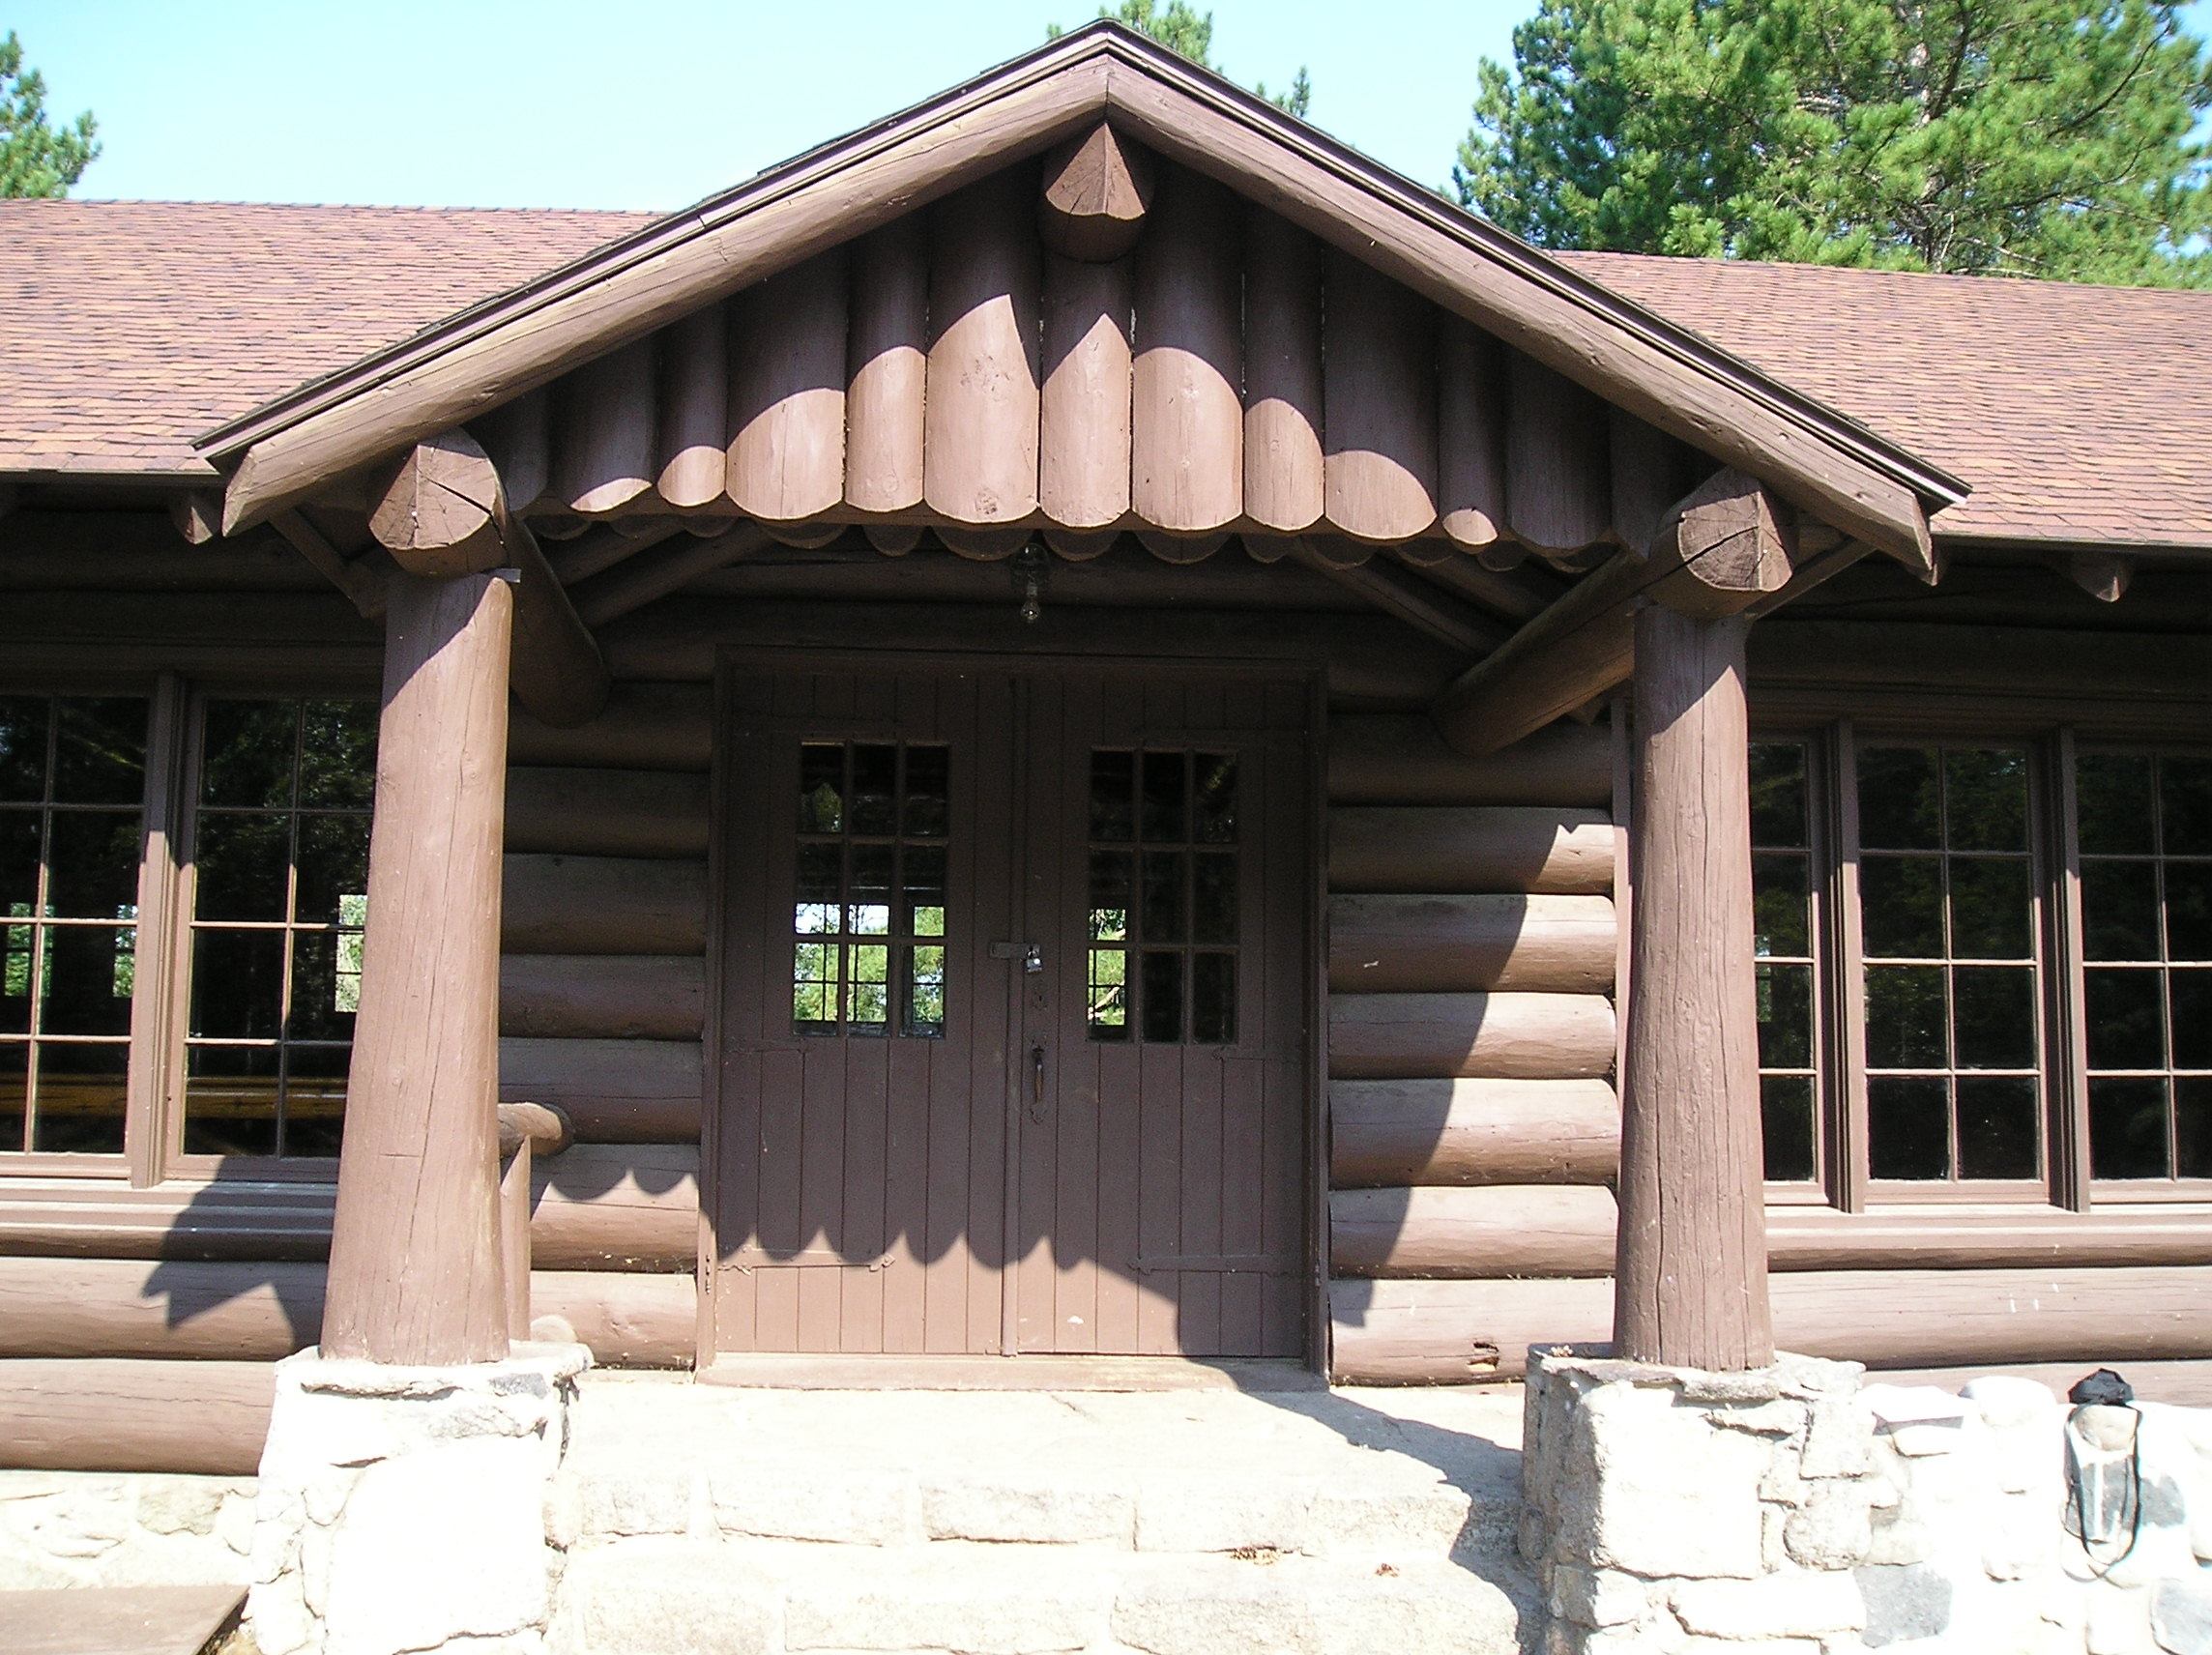 Front entry door of log pavilion.